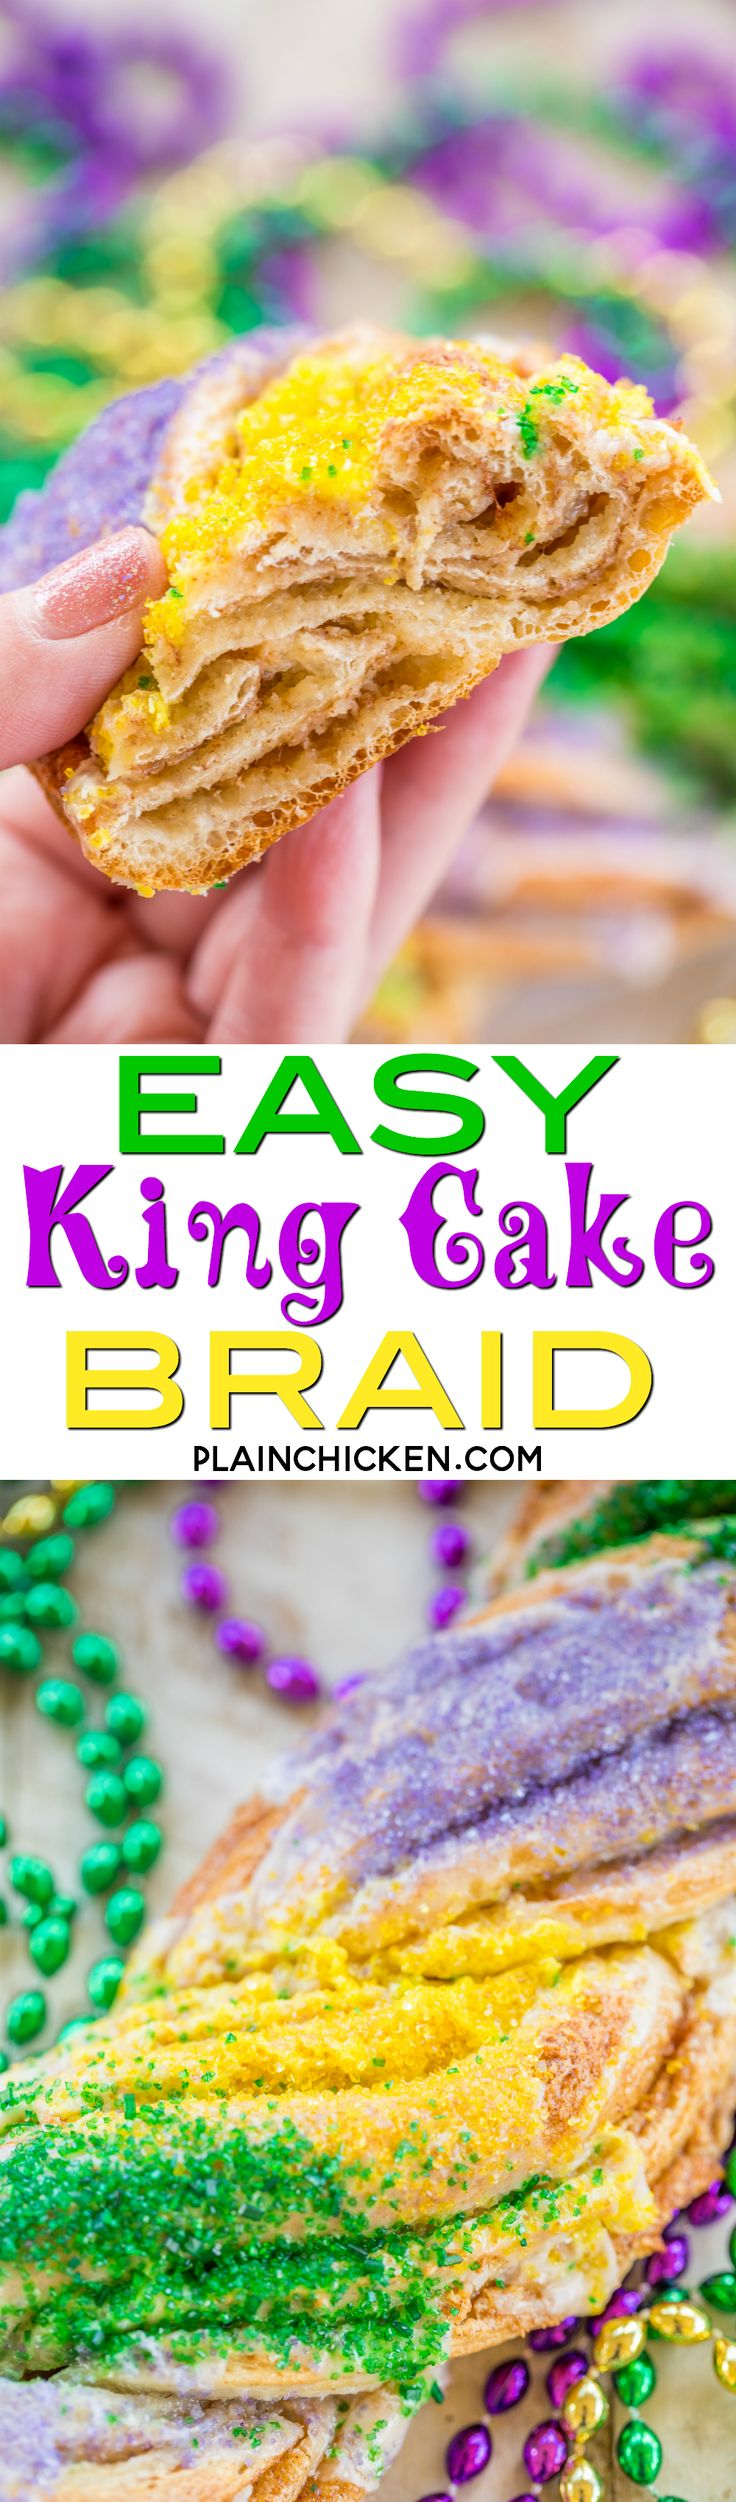 Easy King Cake Braid - perfect for Mardi Gras!!! Easy King Cake made with refrigerated french bread dough - stuffed with cream cheese, cinnamon and sugar. Topped with a quick powdered sugar and milk glaze and sprinkled with yellow, purple and green sugar. SO festive!!! Ready to eat in 30 minutes! Great for breakfast or dessert. I took this to a party and it was gone in a flash!!! YUM! #kingcake #mardigras